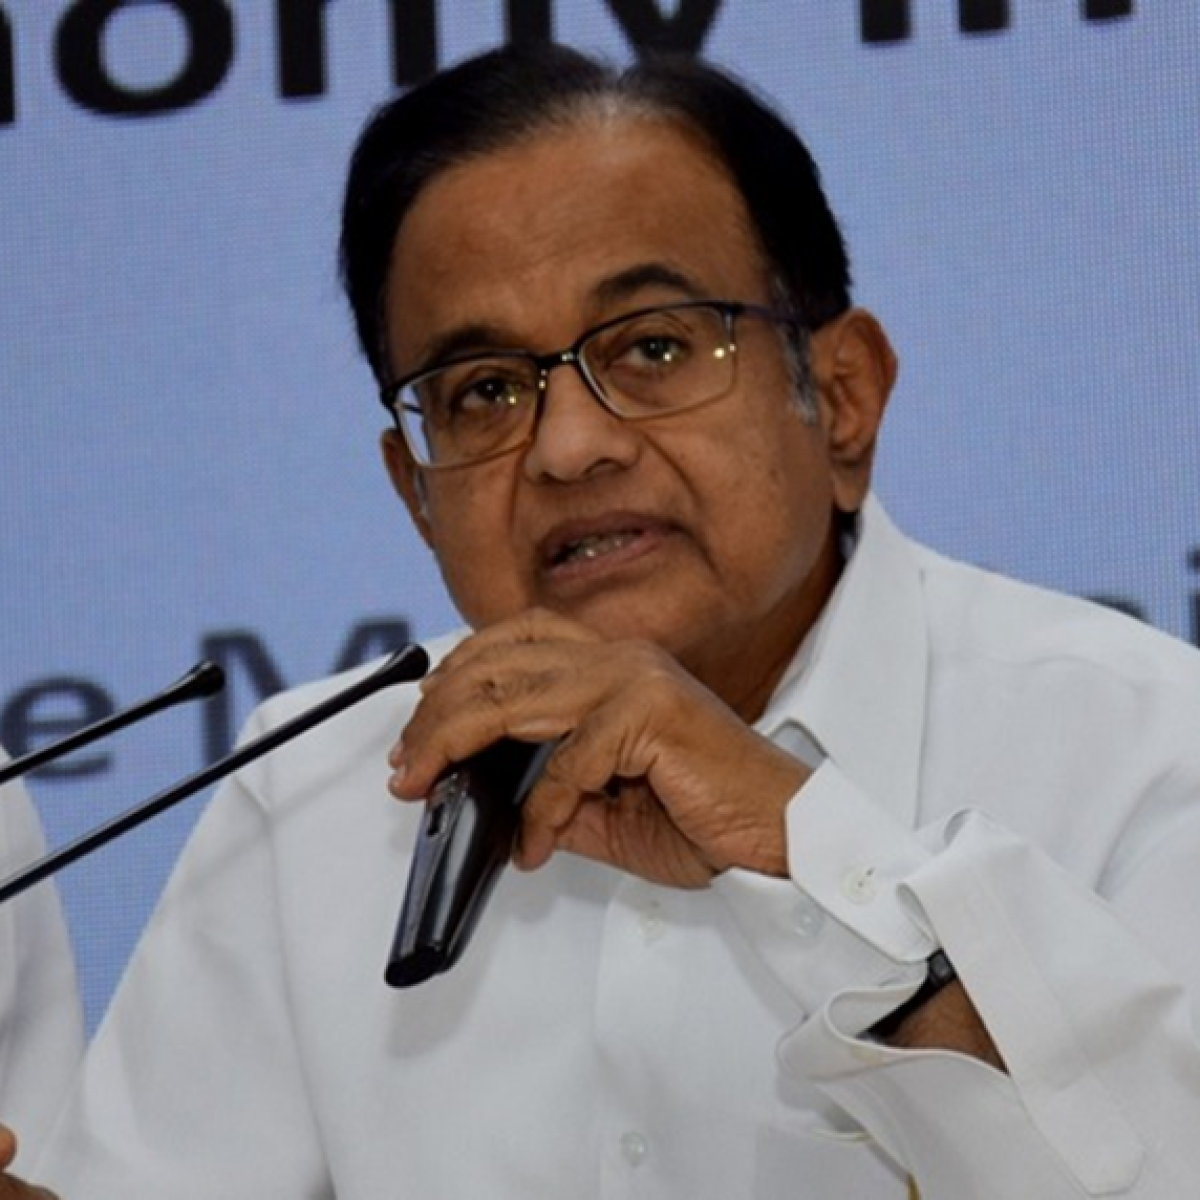 Aircel-Maxis case: ED asks Delhi Court to cancel anticipatory bail of Chidambaram and son, seeks custodial interrogation